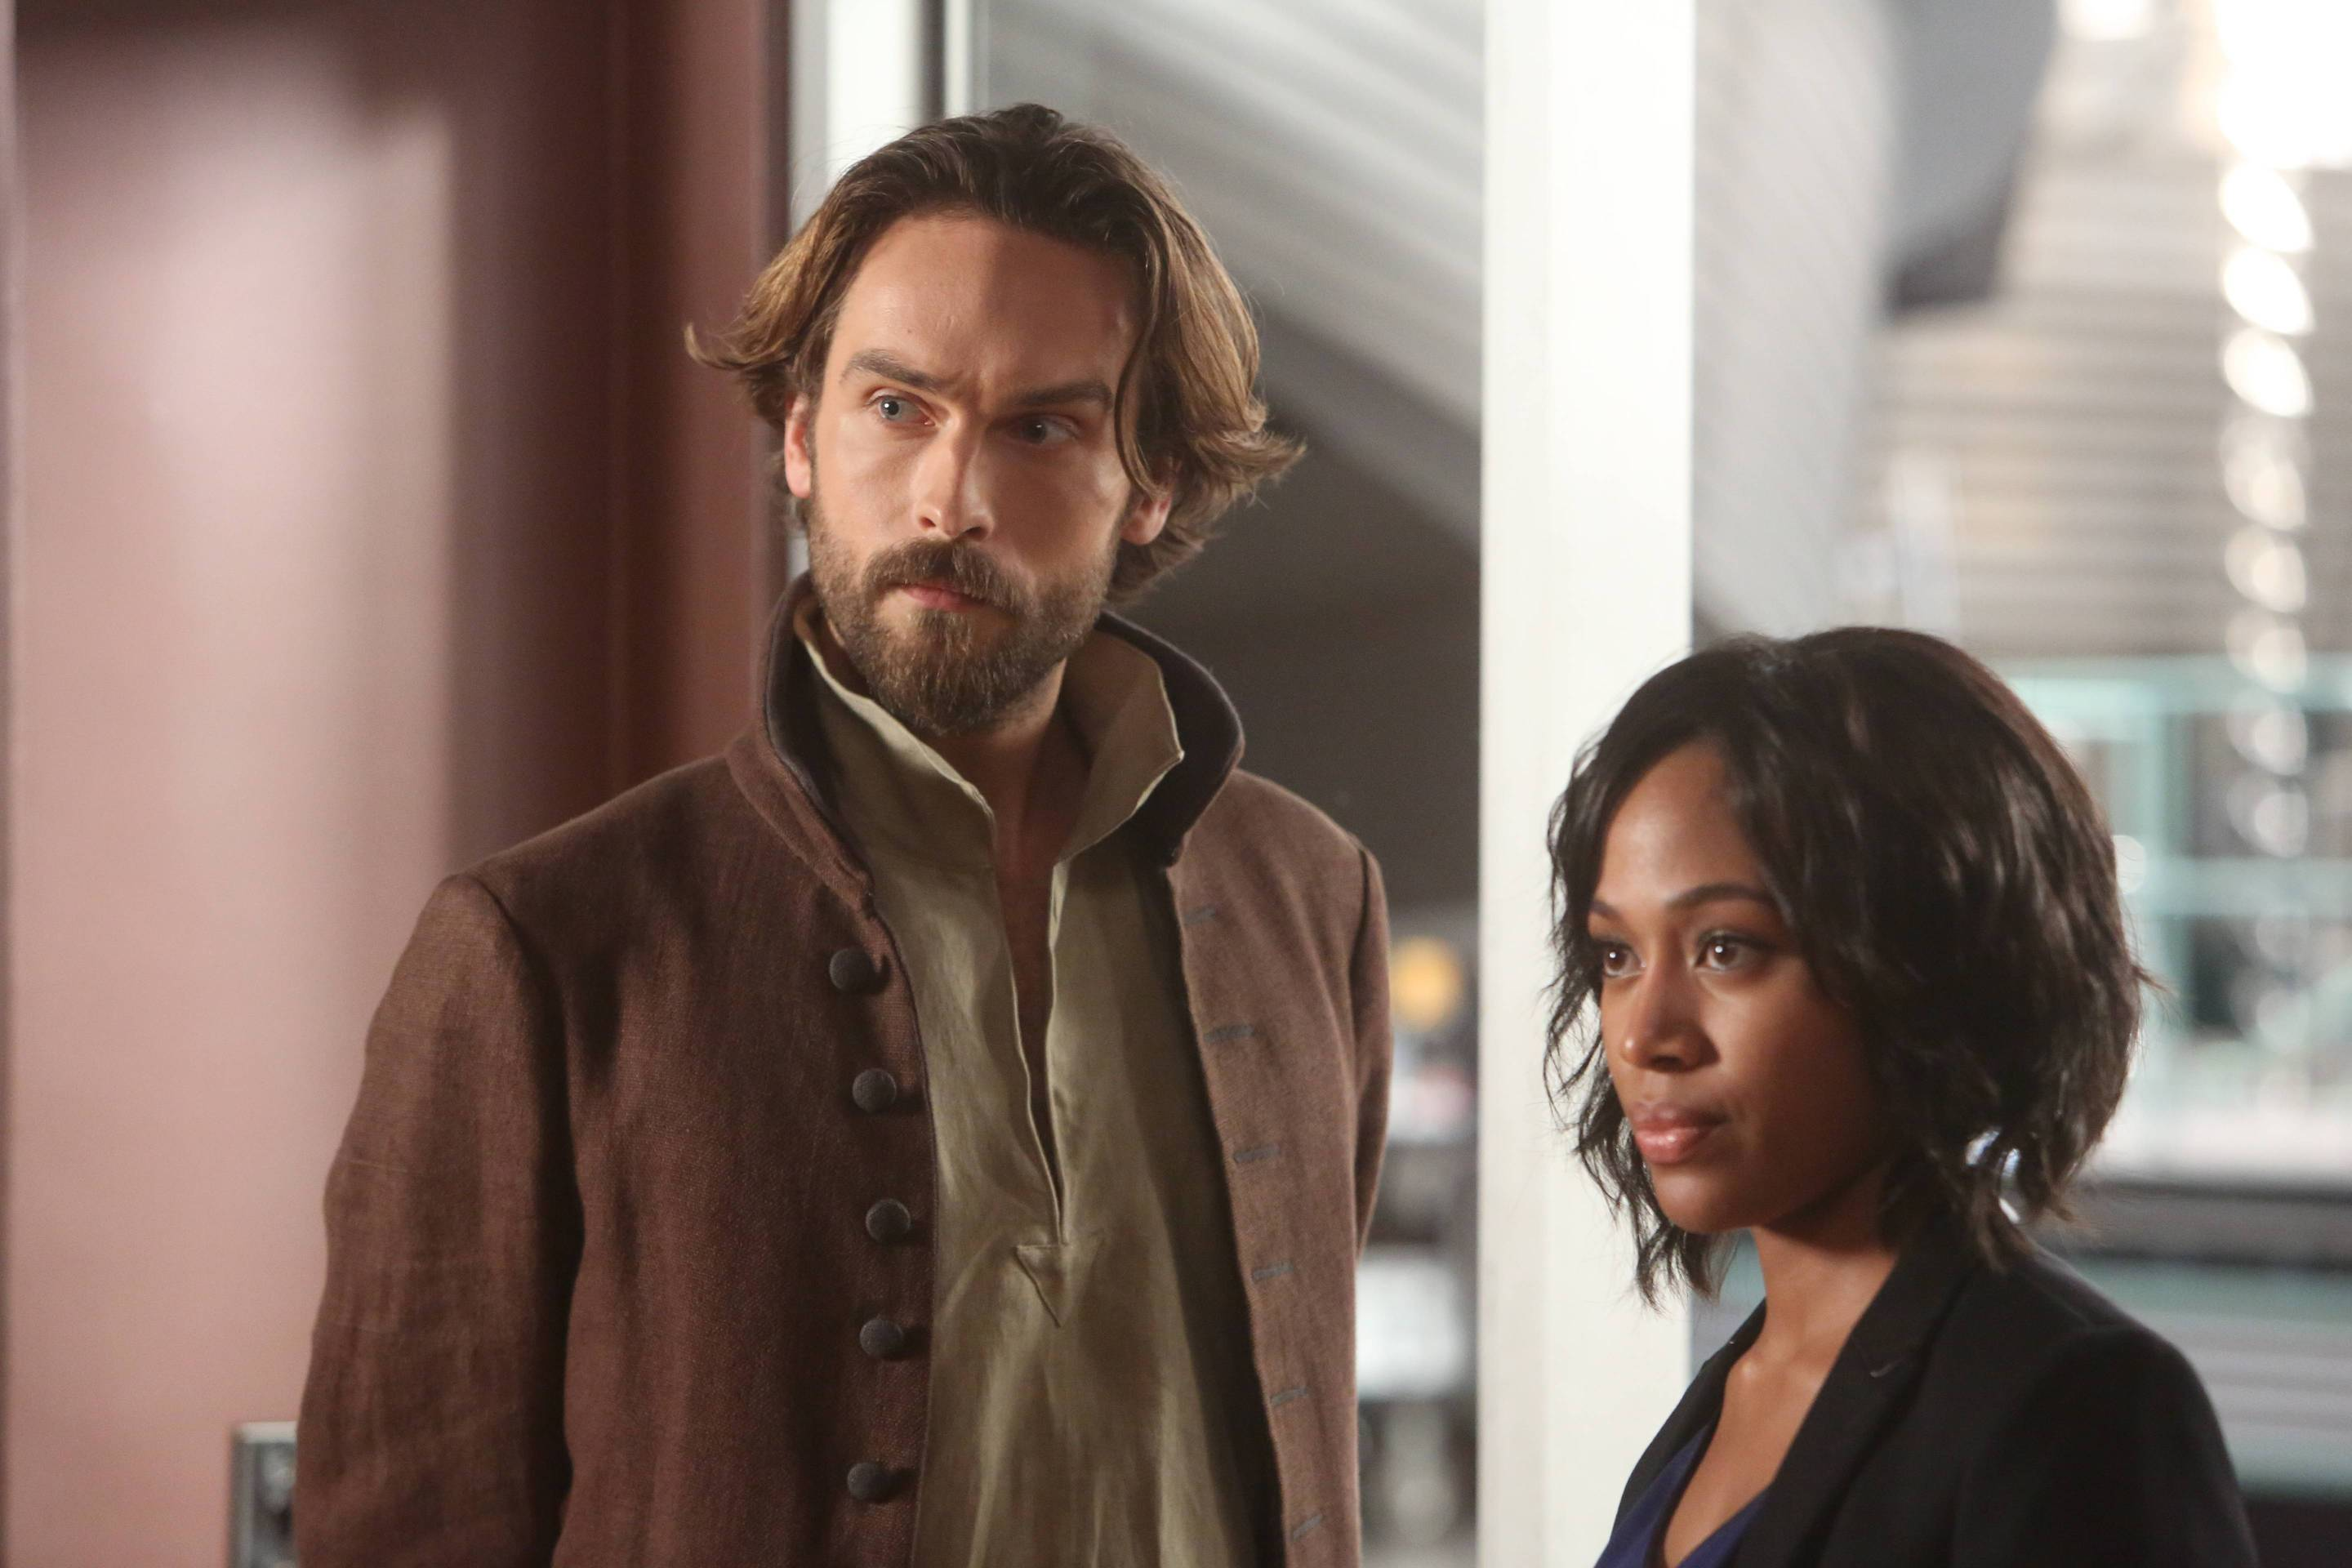 Episode 303: Sleepy Hollow - S3E5 - Dead Men Tell No Tales